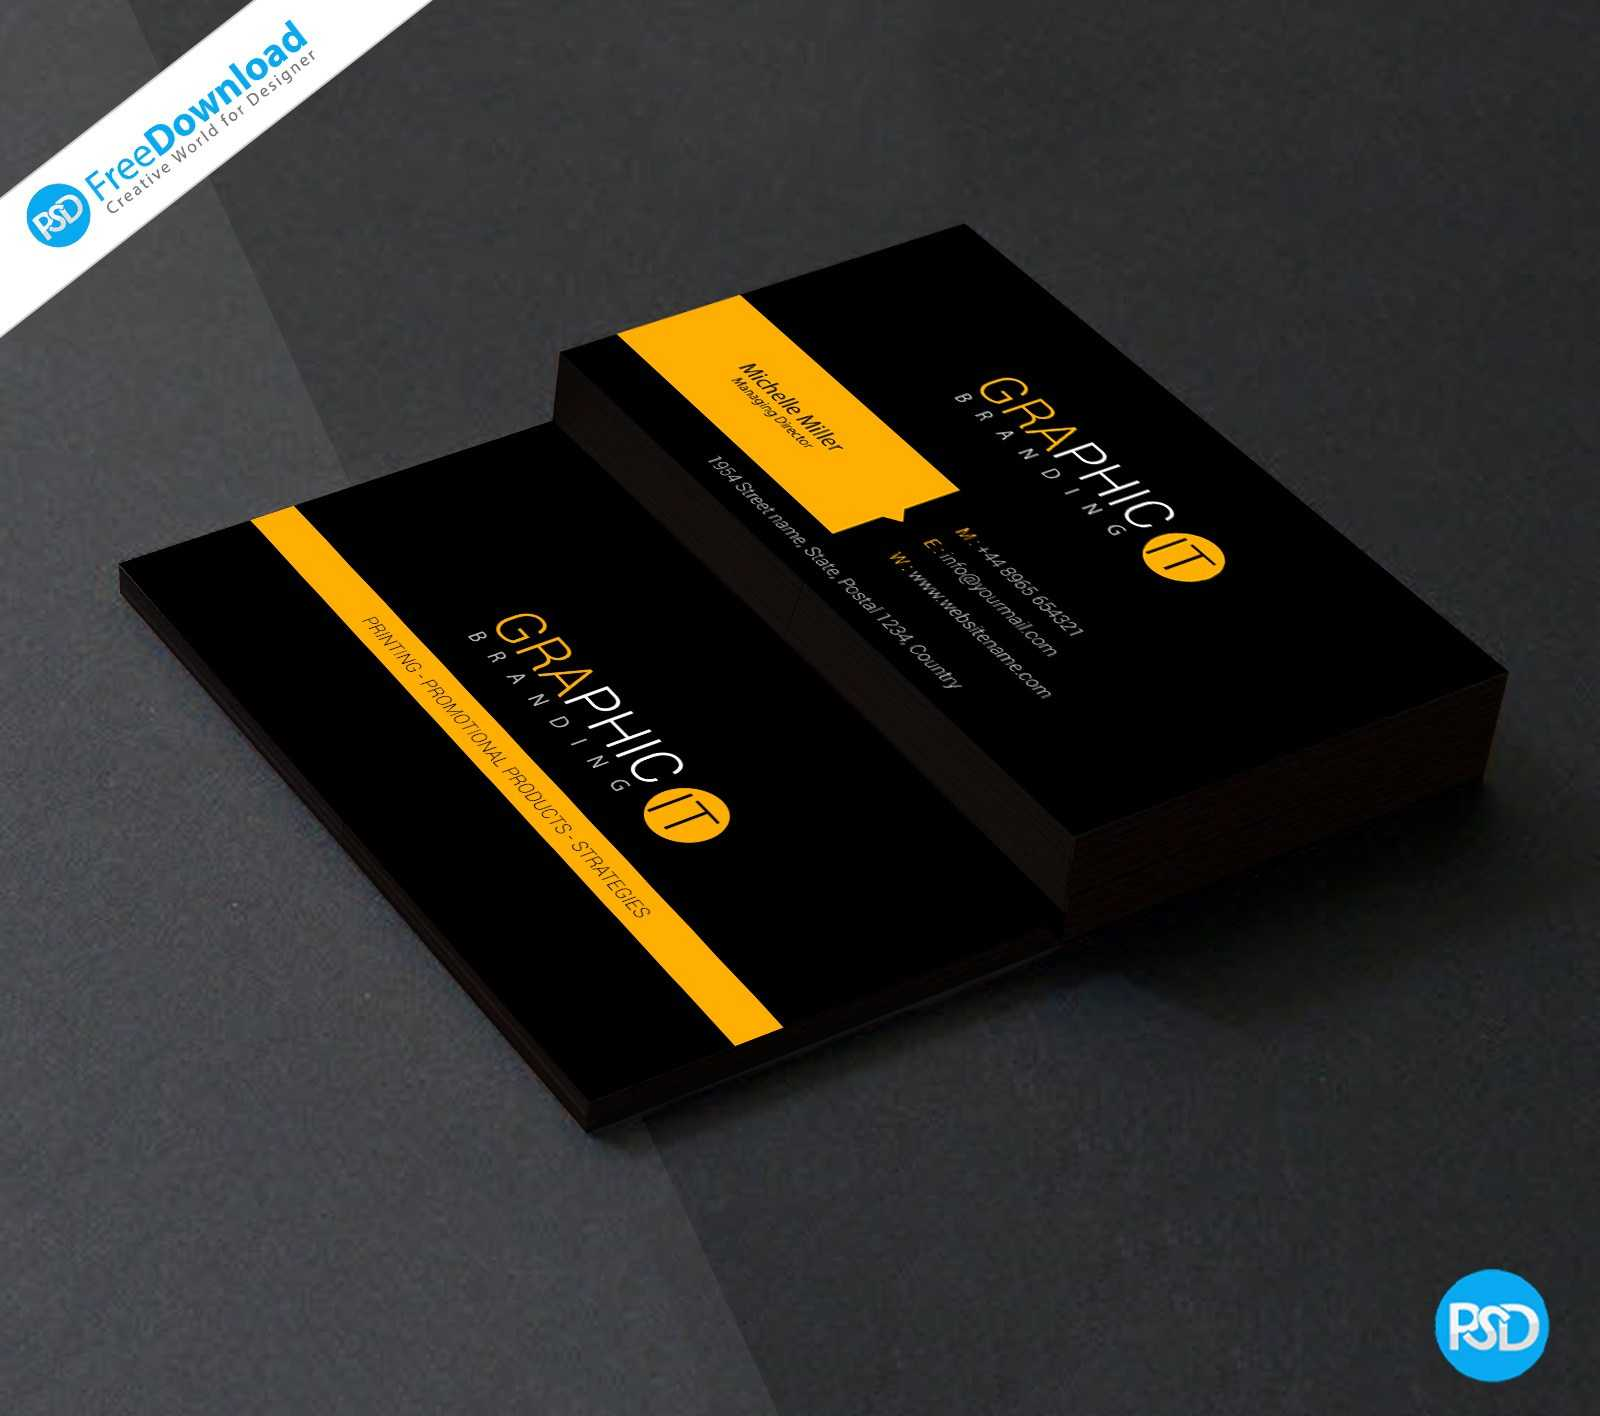 009 Template Ideas Photography Visiting Card Design Psd File Intended For Visiting Card Templates Psd Free Download